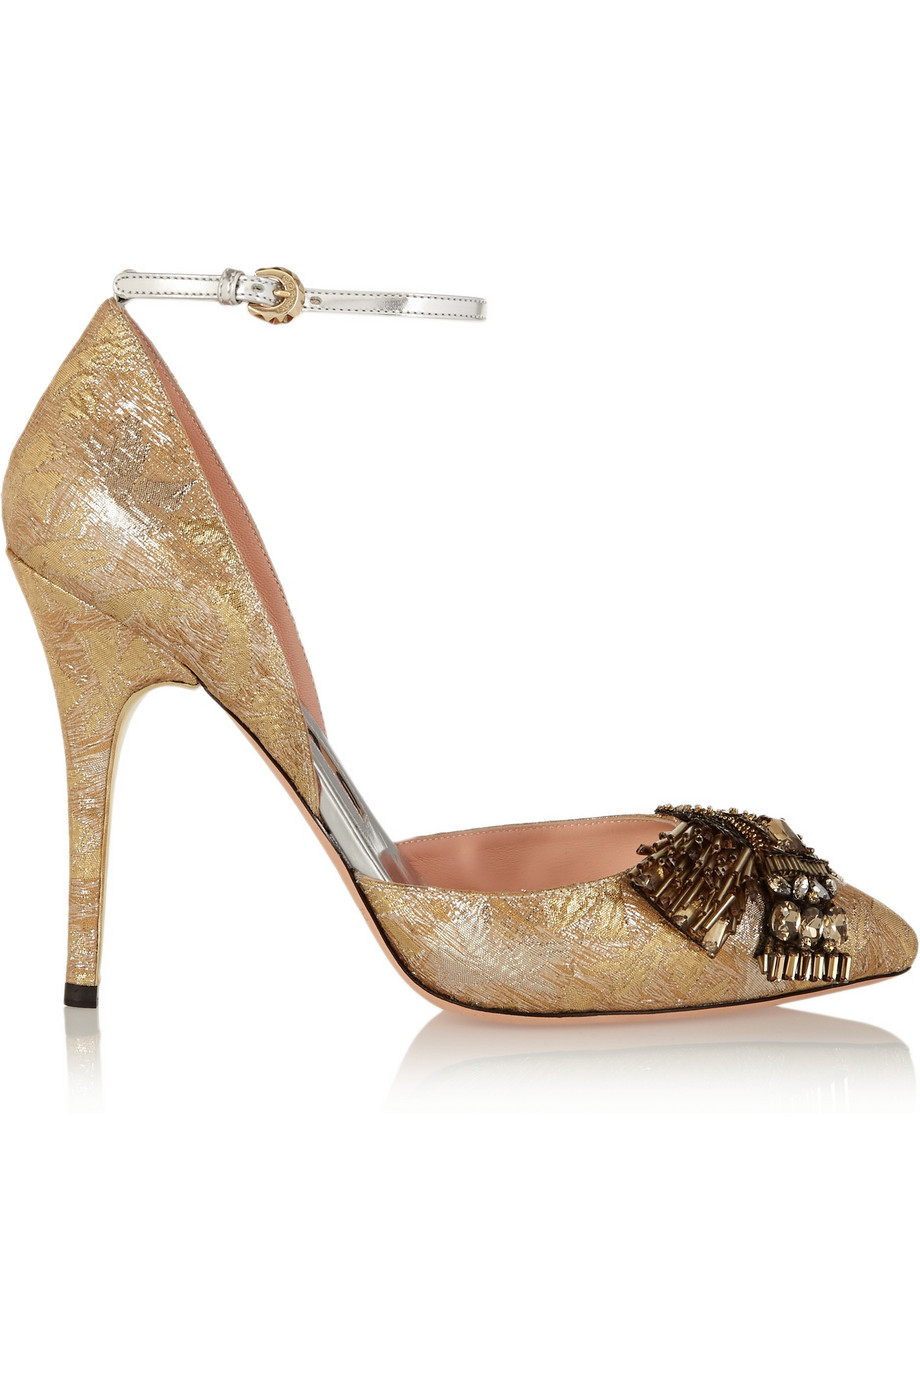 Rochas  pump - was $1,050, now $525